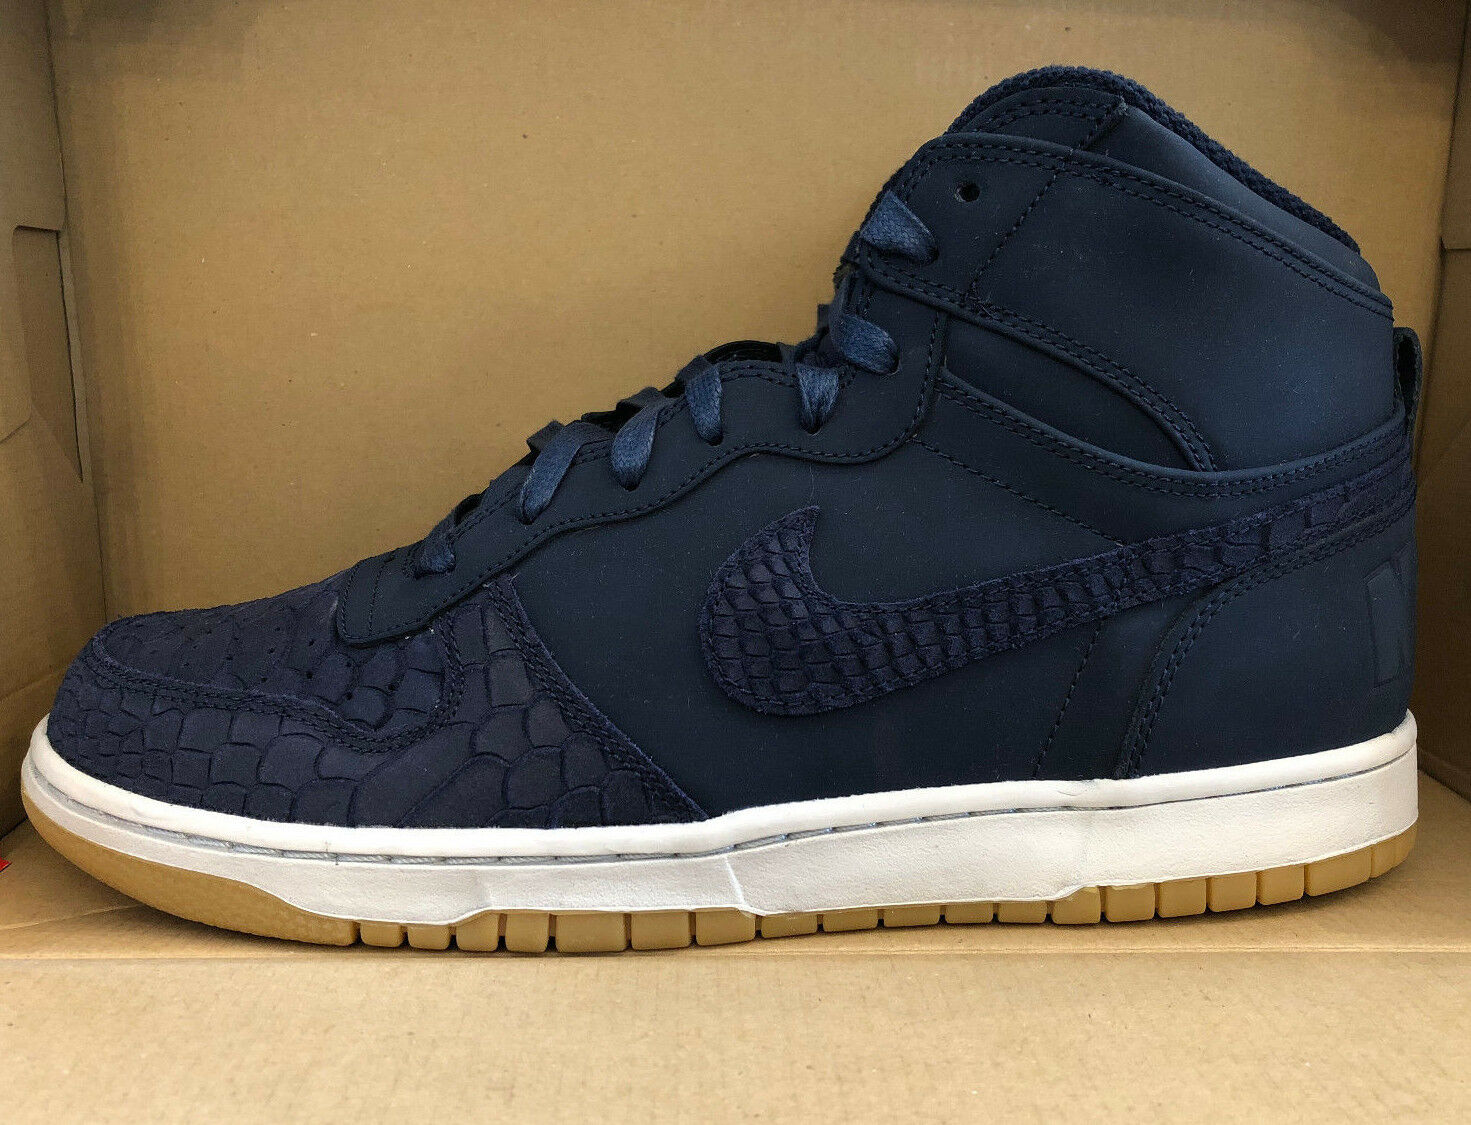 MEN'S BIG midnight NIKE HIGH LUX chaussures midnight BIG navy 854165 400 ae8376